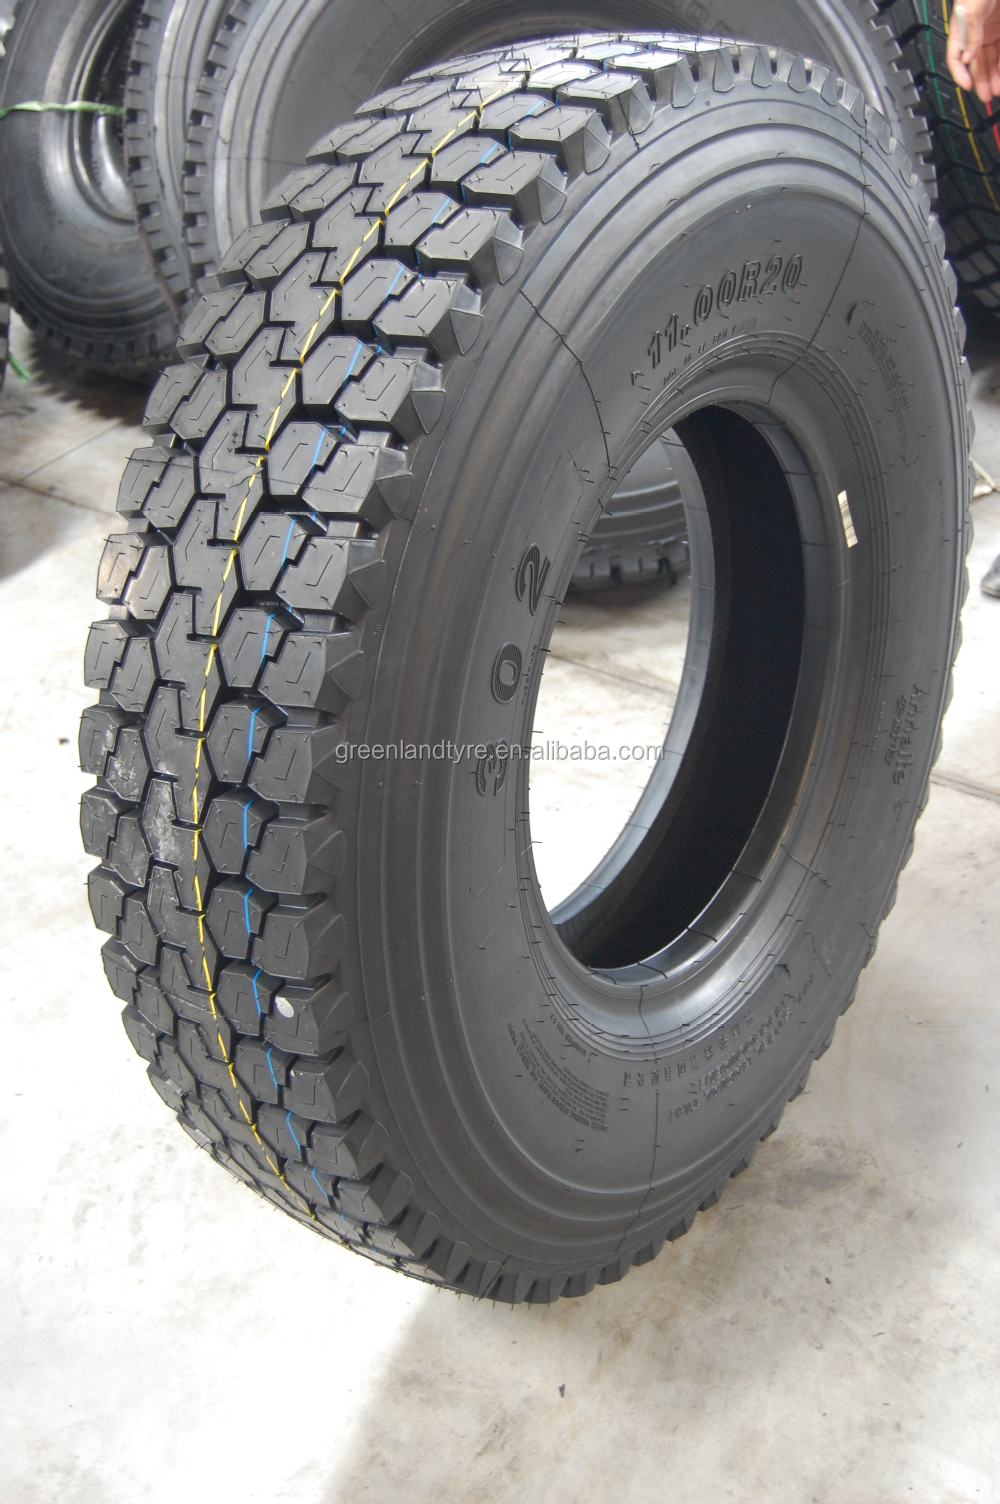 10r20 low price mrf tyre for truck michelin truck tire dump truck tires alibaba china supplier. Black Bedroom Furniture Sets. Home Design Ideas